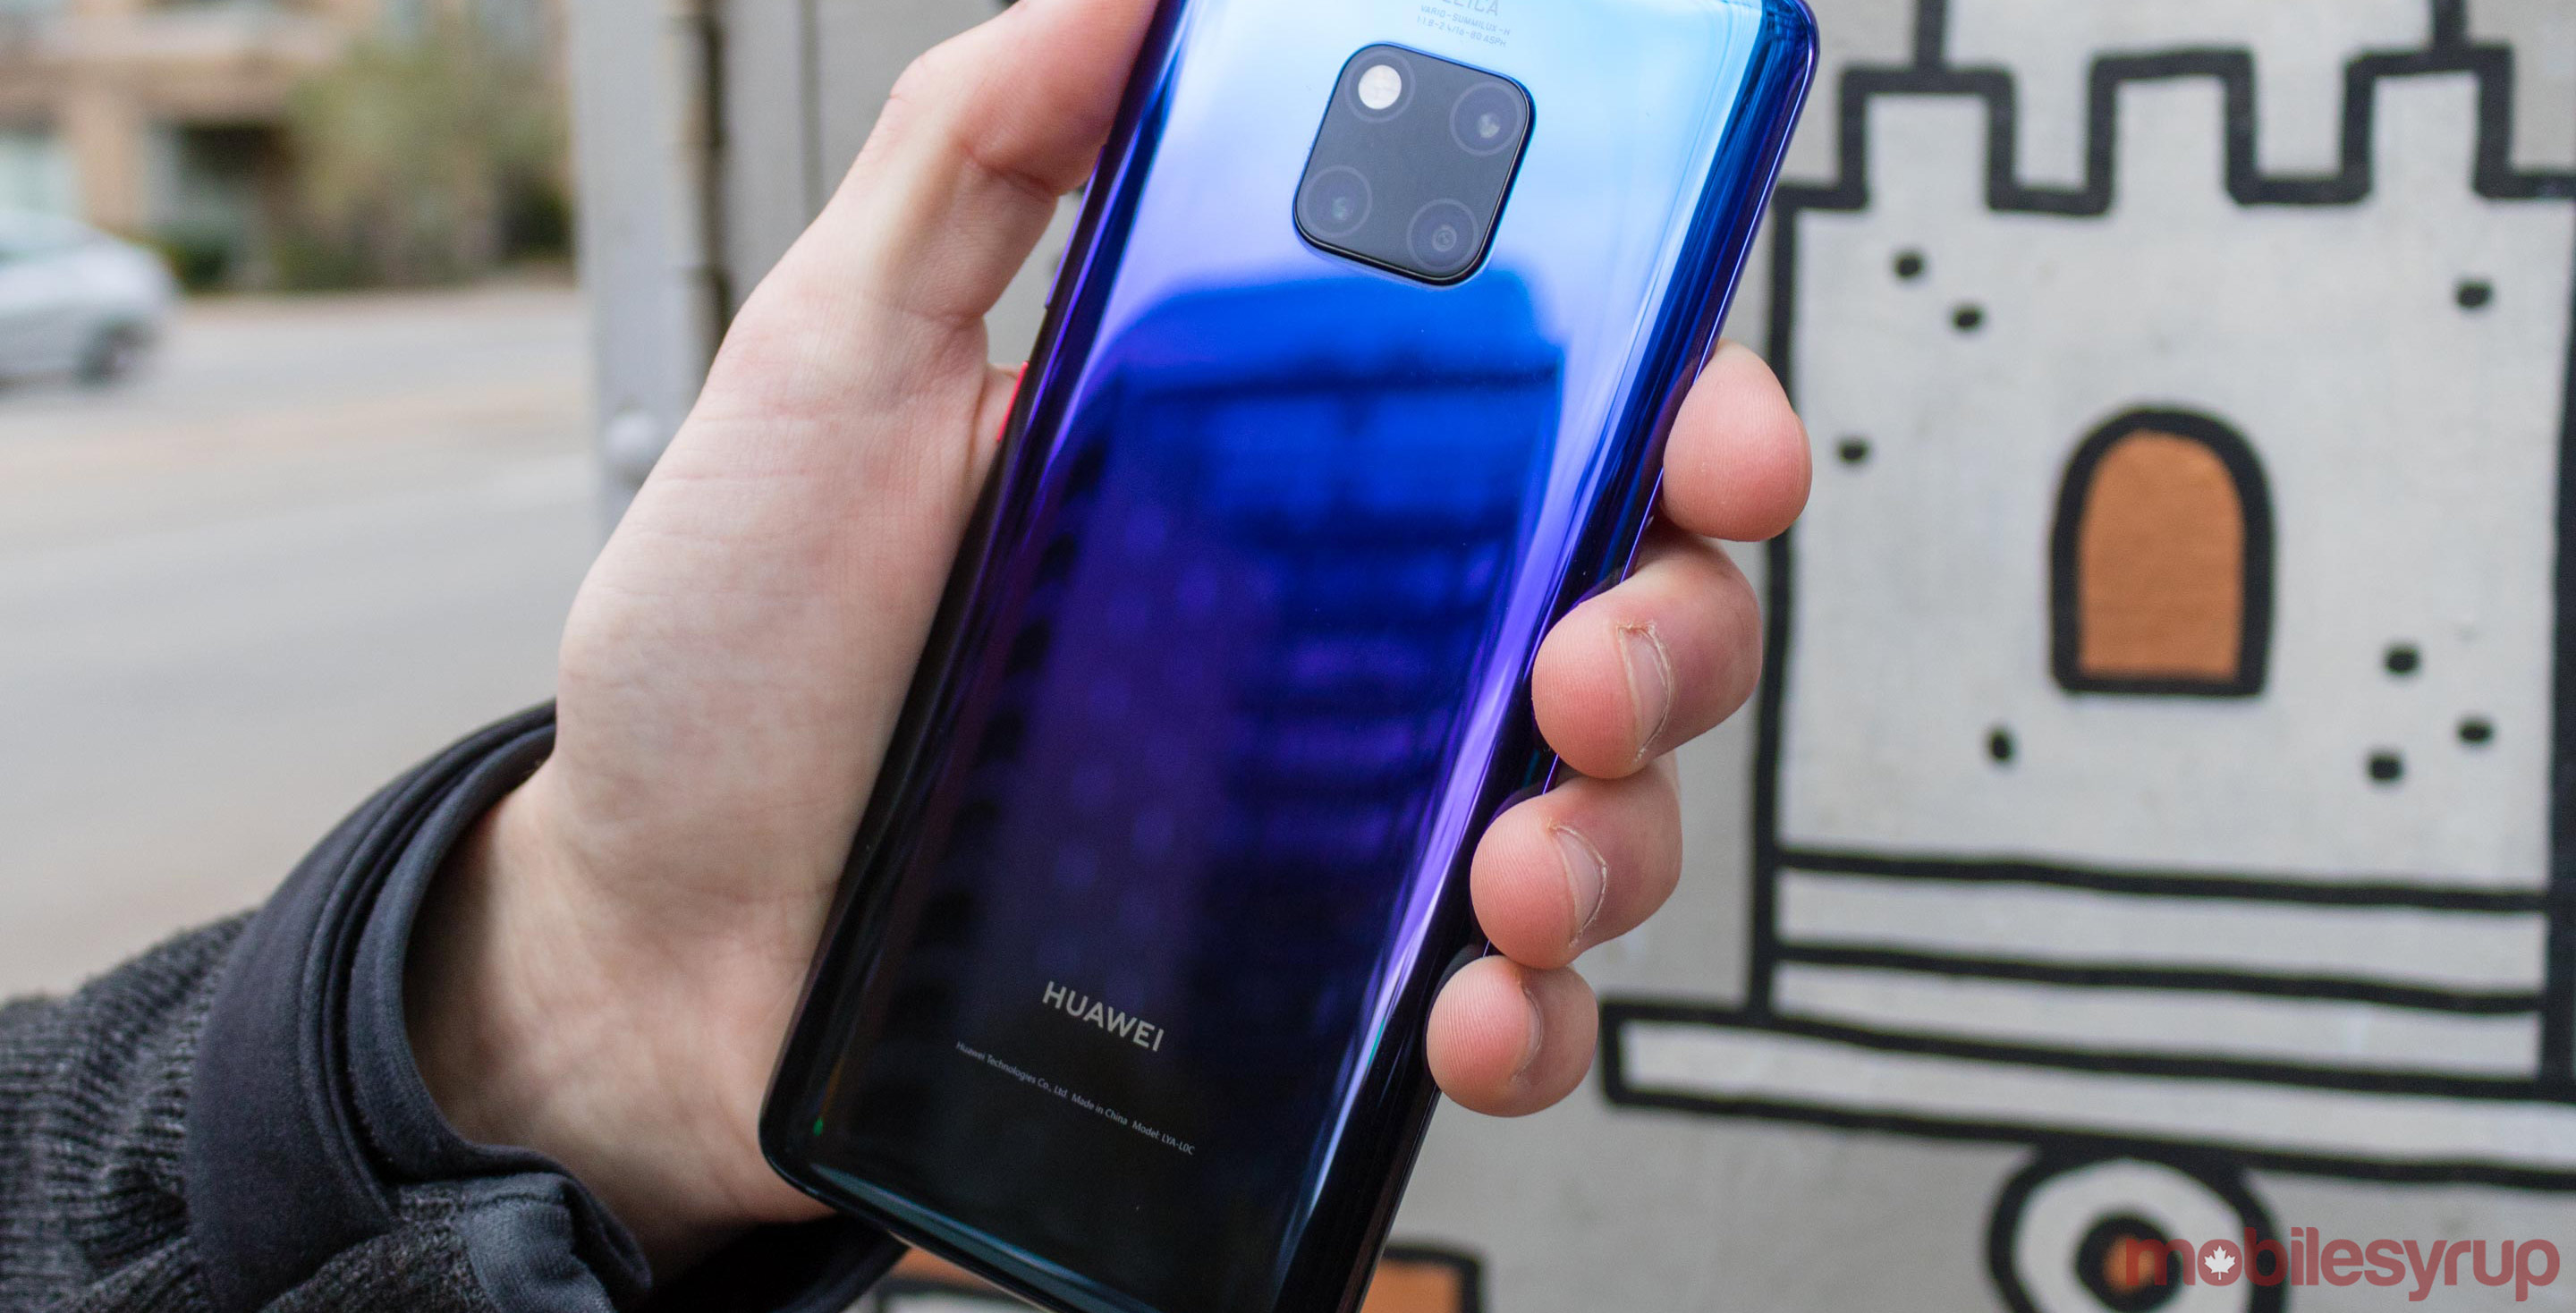 Here's an alleged live image of Huawei's Mate 30 Pro